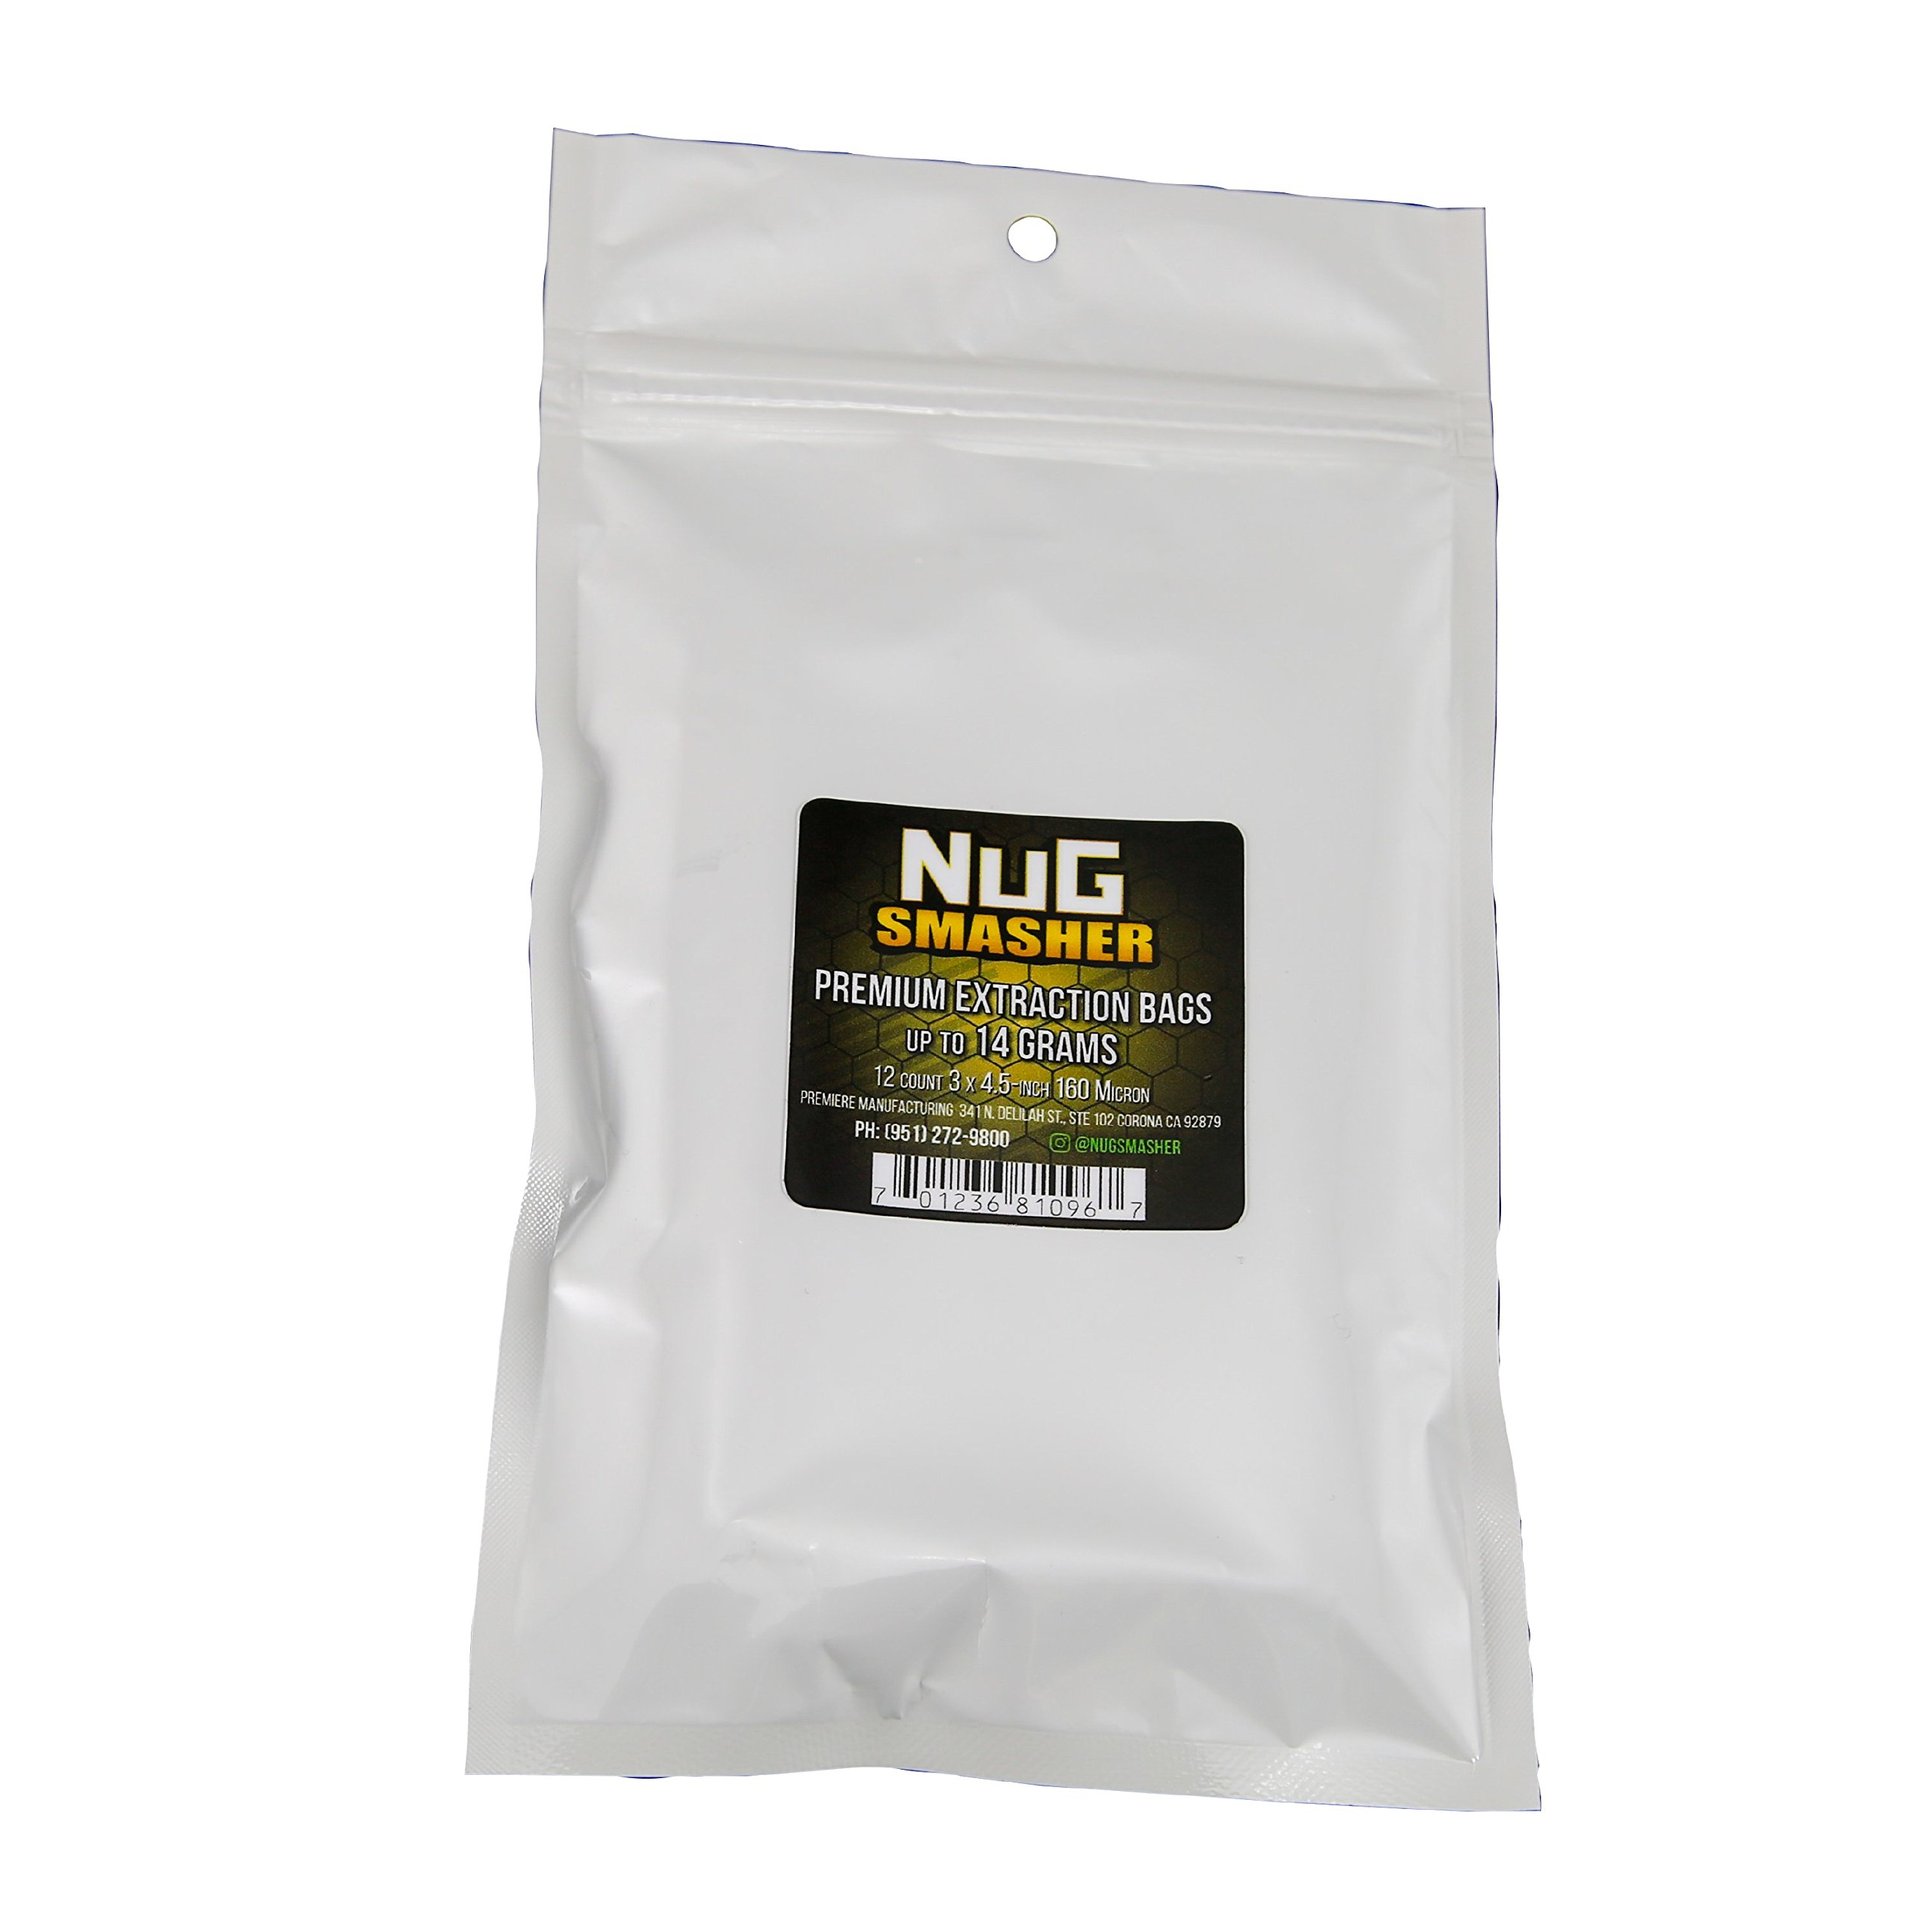 ROSIN PRESS BAGS 14 GRAM NUGSMASHER Premium Solventless Extraction Bags Hand Made In The USA (12 per pack) (160 Micron)